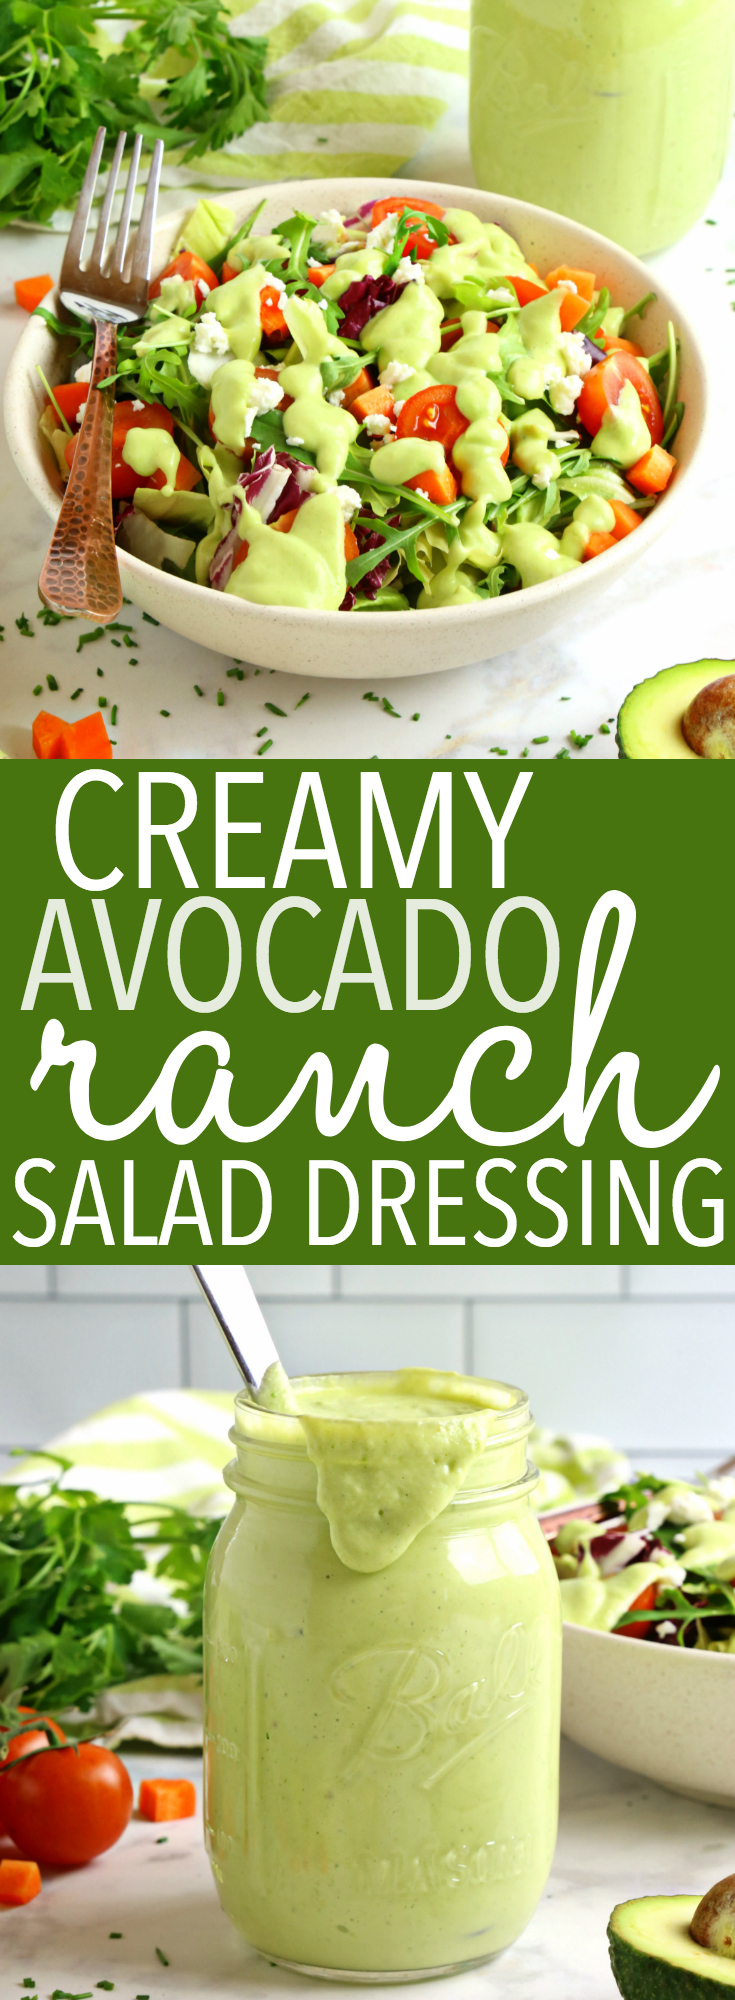 This Healthy Creamy Avocado Ranch Salad Dressing is the perfect alternative to store-bought ranch dressing! It's full of healthy fats, lean protein and packed with delicious ranch flavour! And it's easy to make! Recipe from thebusybaker.ca! #homemaderanch #avocadoranch #healthyranchdressing #homemaderanch